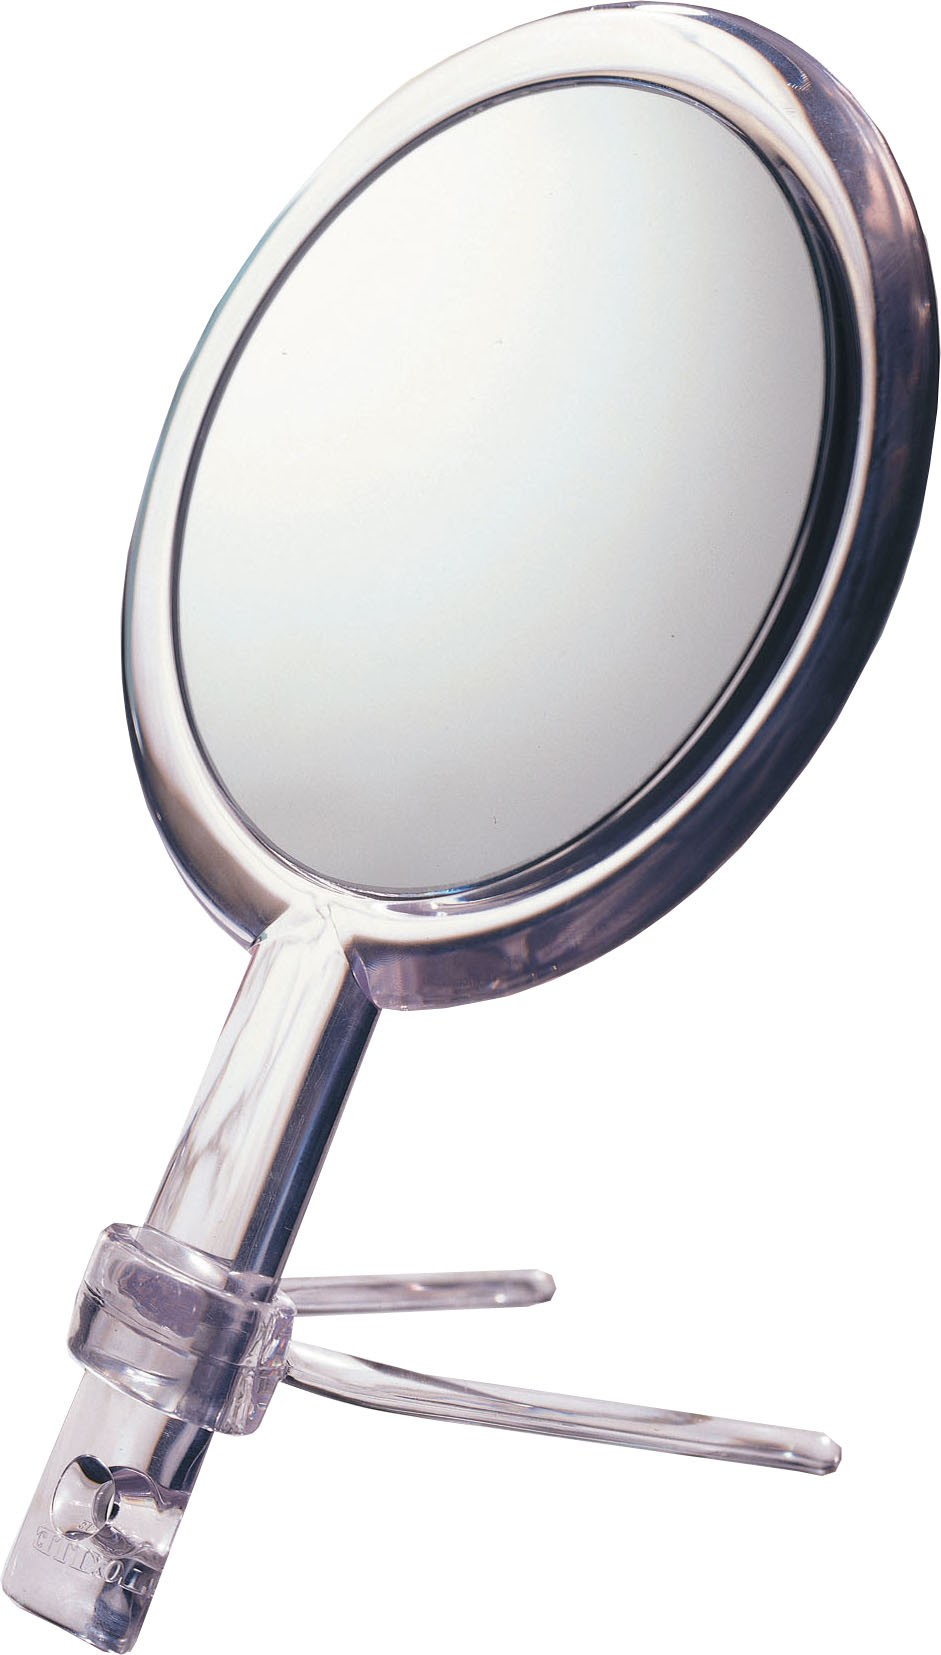 FL-15H Handheld 2-Sided Mirror with Stand-15